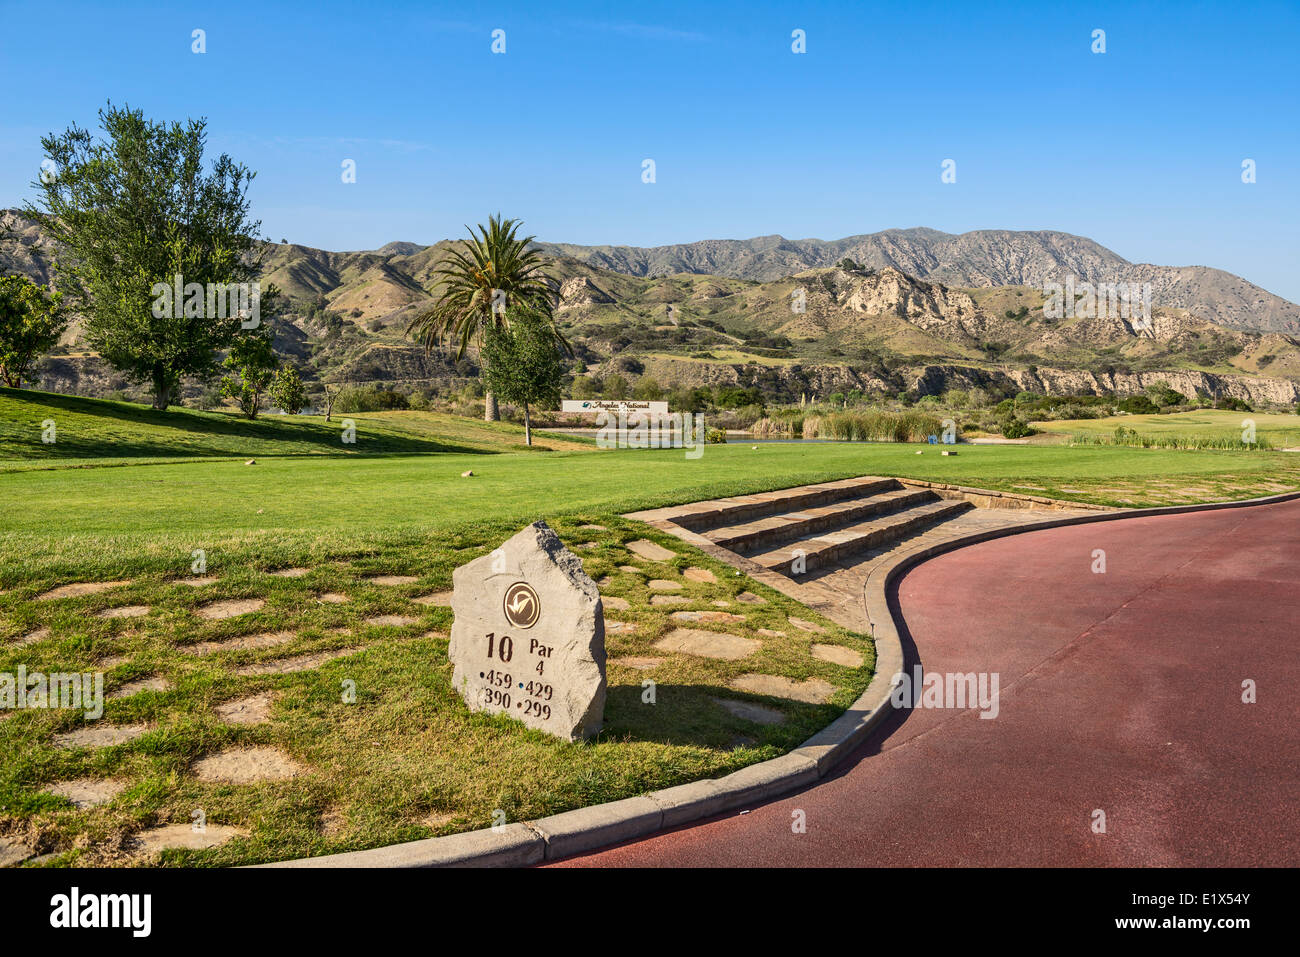 The magnificent Angeles National Golf Club course. - Stock Image